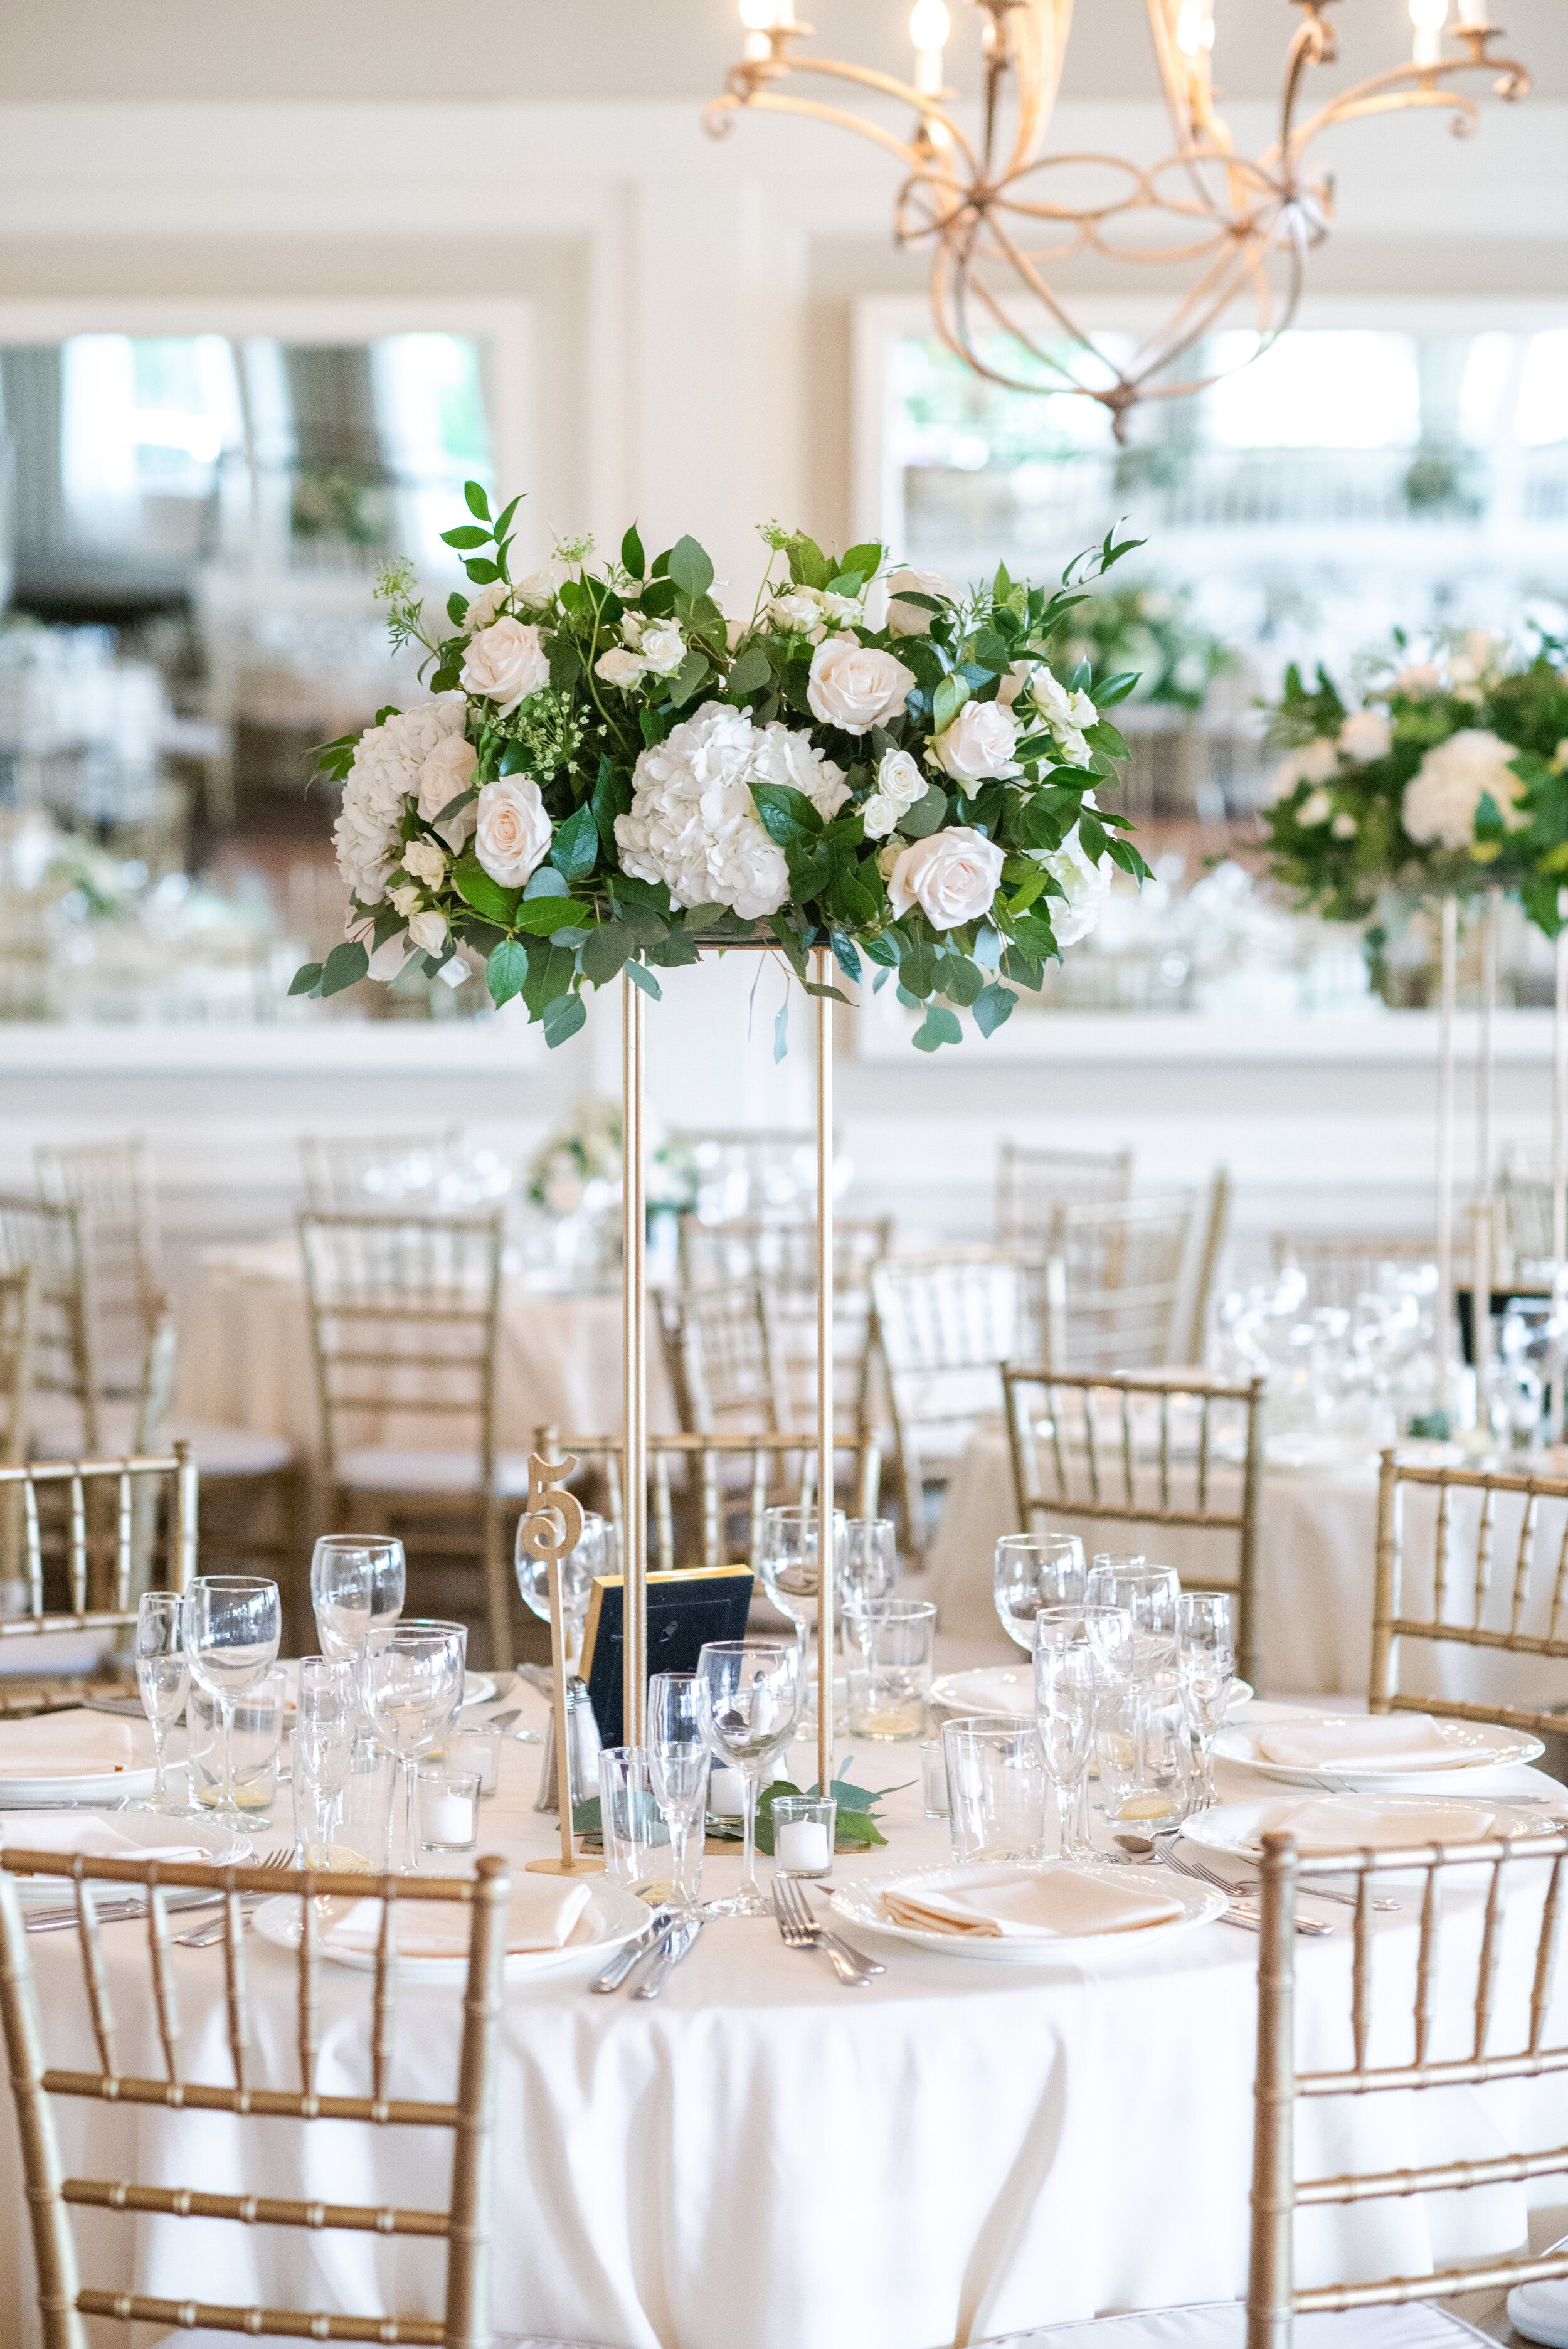 How much wedding flowers cost? in 2020 (With images